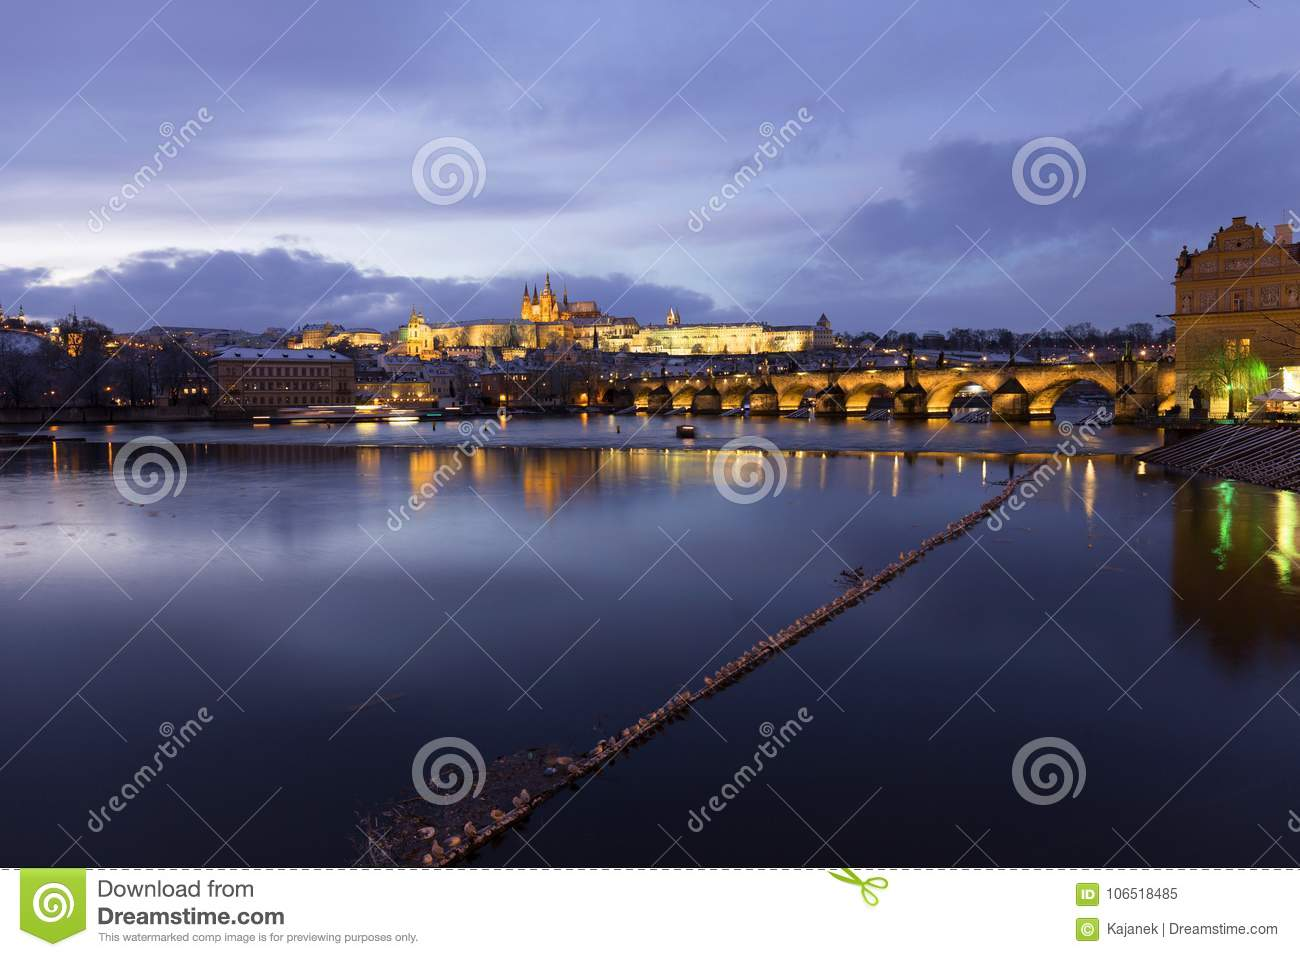 Download Night Romantic Snowy Prague Gothic Castle And St Nicholas Cathedral With Charles Bridge